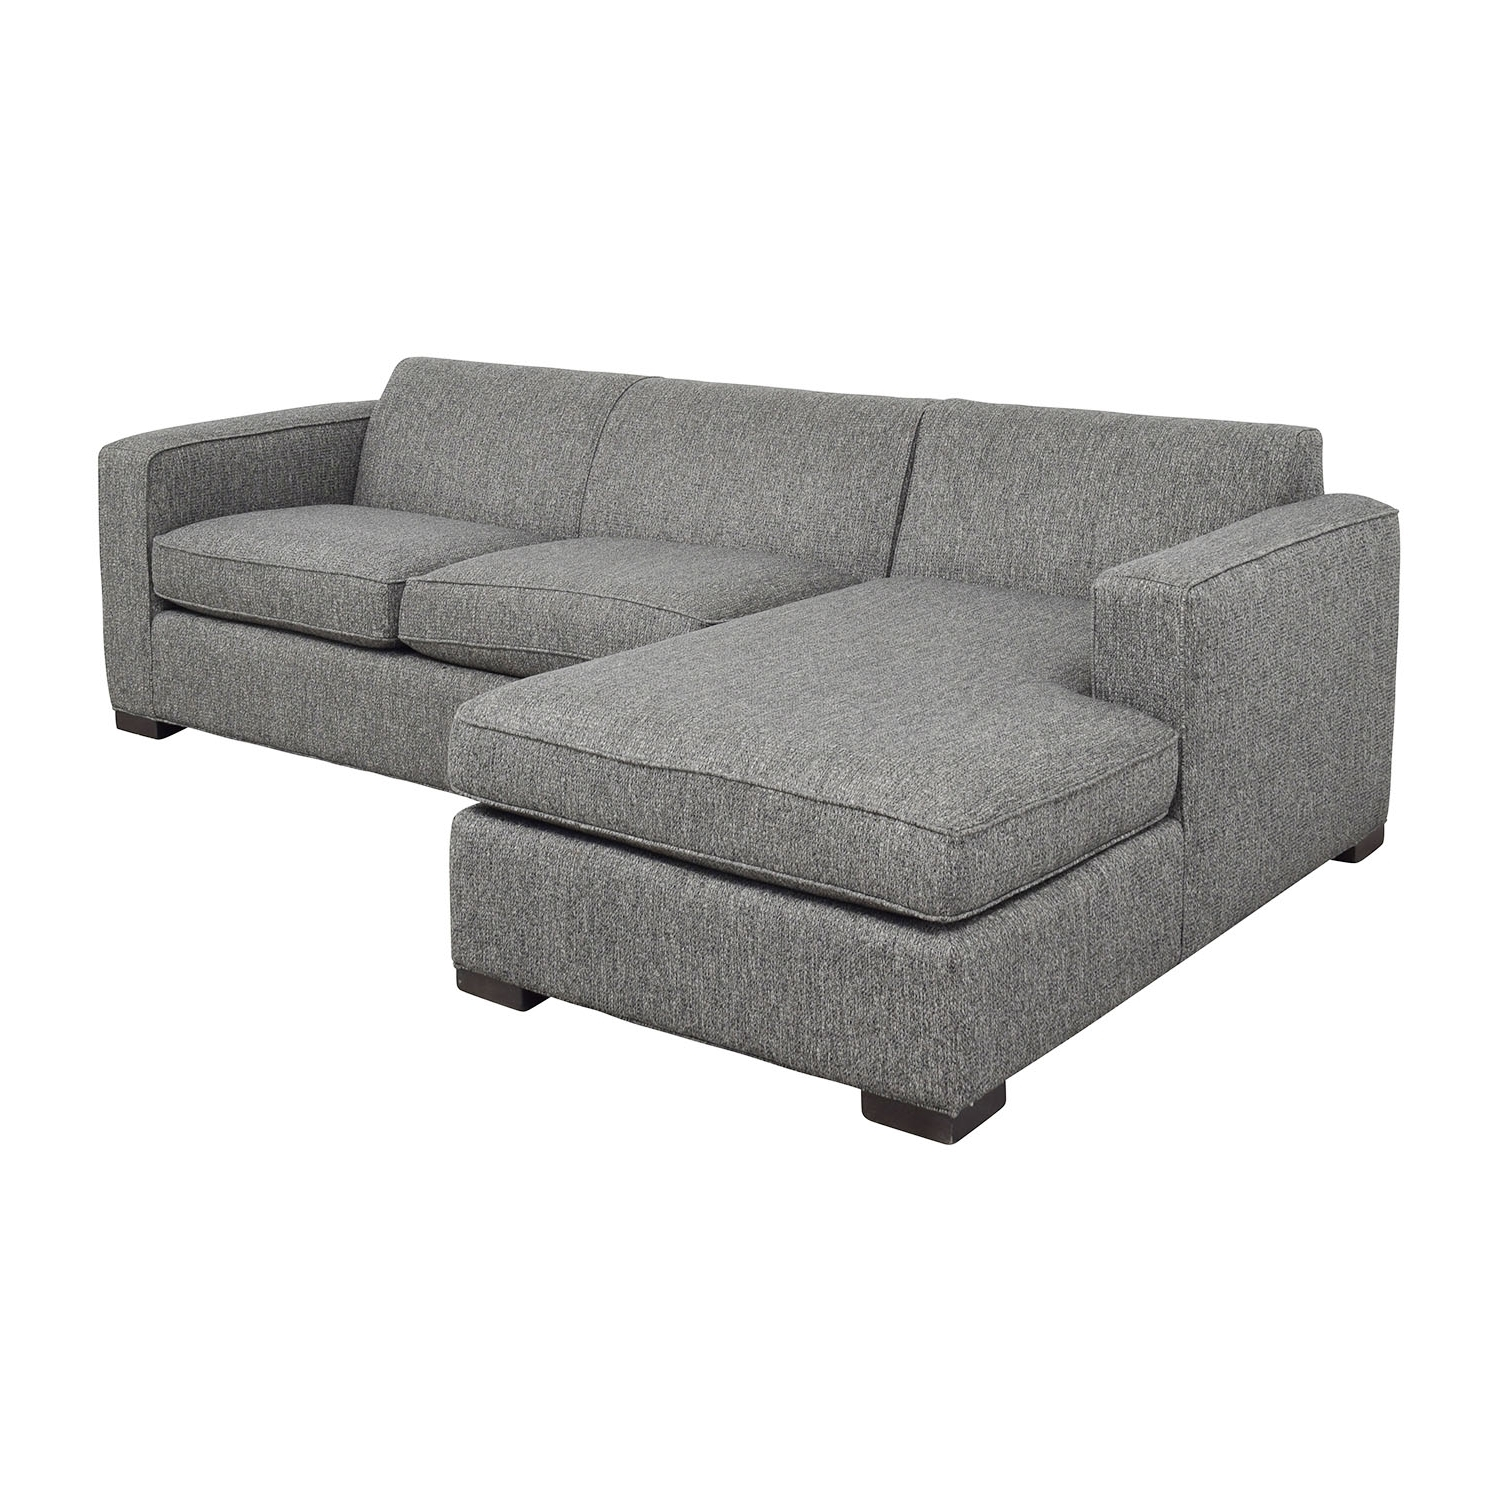 [%61% Off – Room & Board Room & Board Easton Sectional In Grey / Sofas Intended For Preferred Room And Board Sectional Sofas|Room And Board Sectional Sofas In Best And Newest 61% Off – Room & Board Room & Board Easton Sectional In Grey / Sofas|Well Known Room And Board Sectional Sofas With 61% Off – Room & Board Room & Board Easton Sectional In Grey / Sofas|Well Known 61% Off – Room & Board Room & Board Easton Sectional In Grey / Sofas Regarding Room And Board Sectional Sofas%] (View 1 of 20)